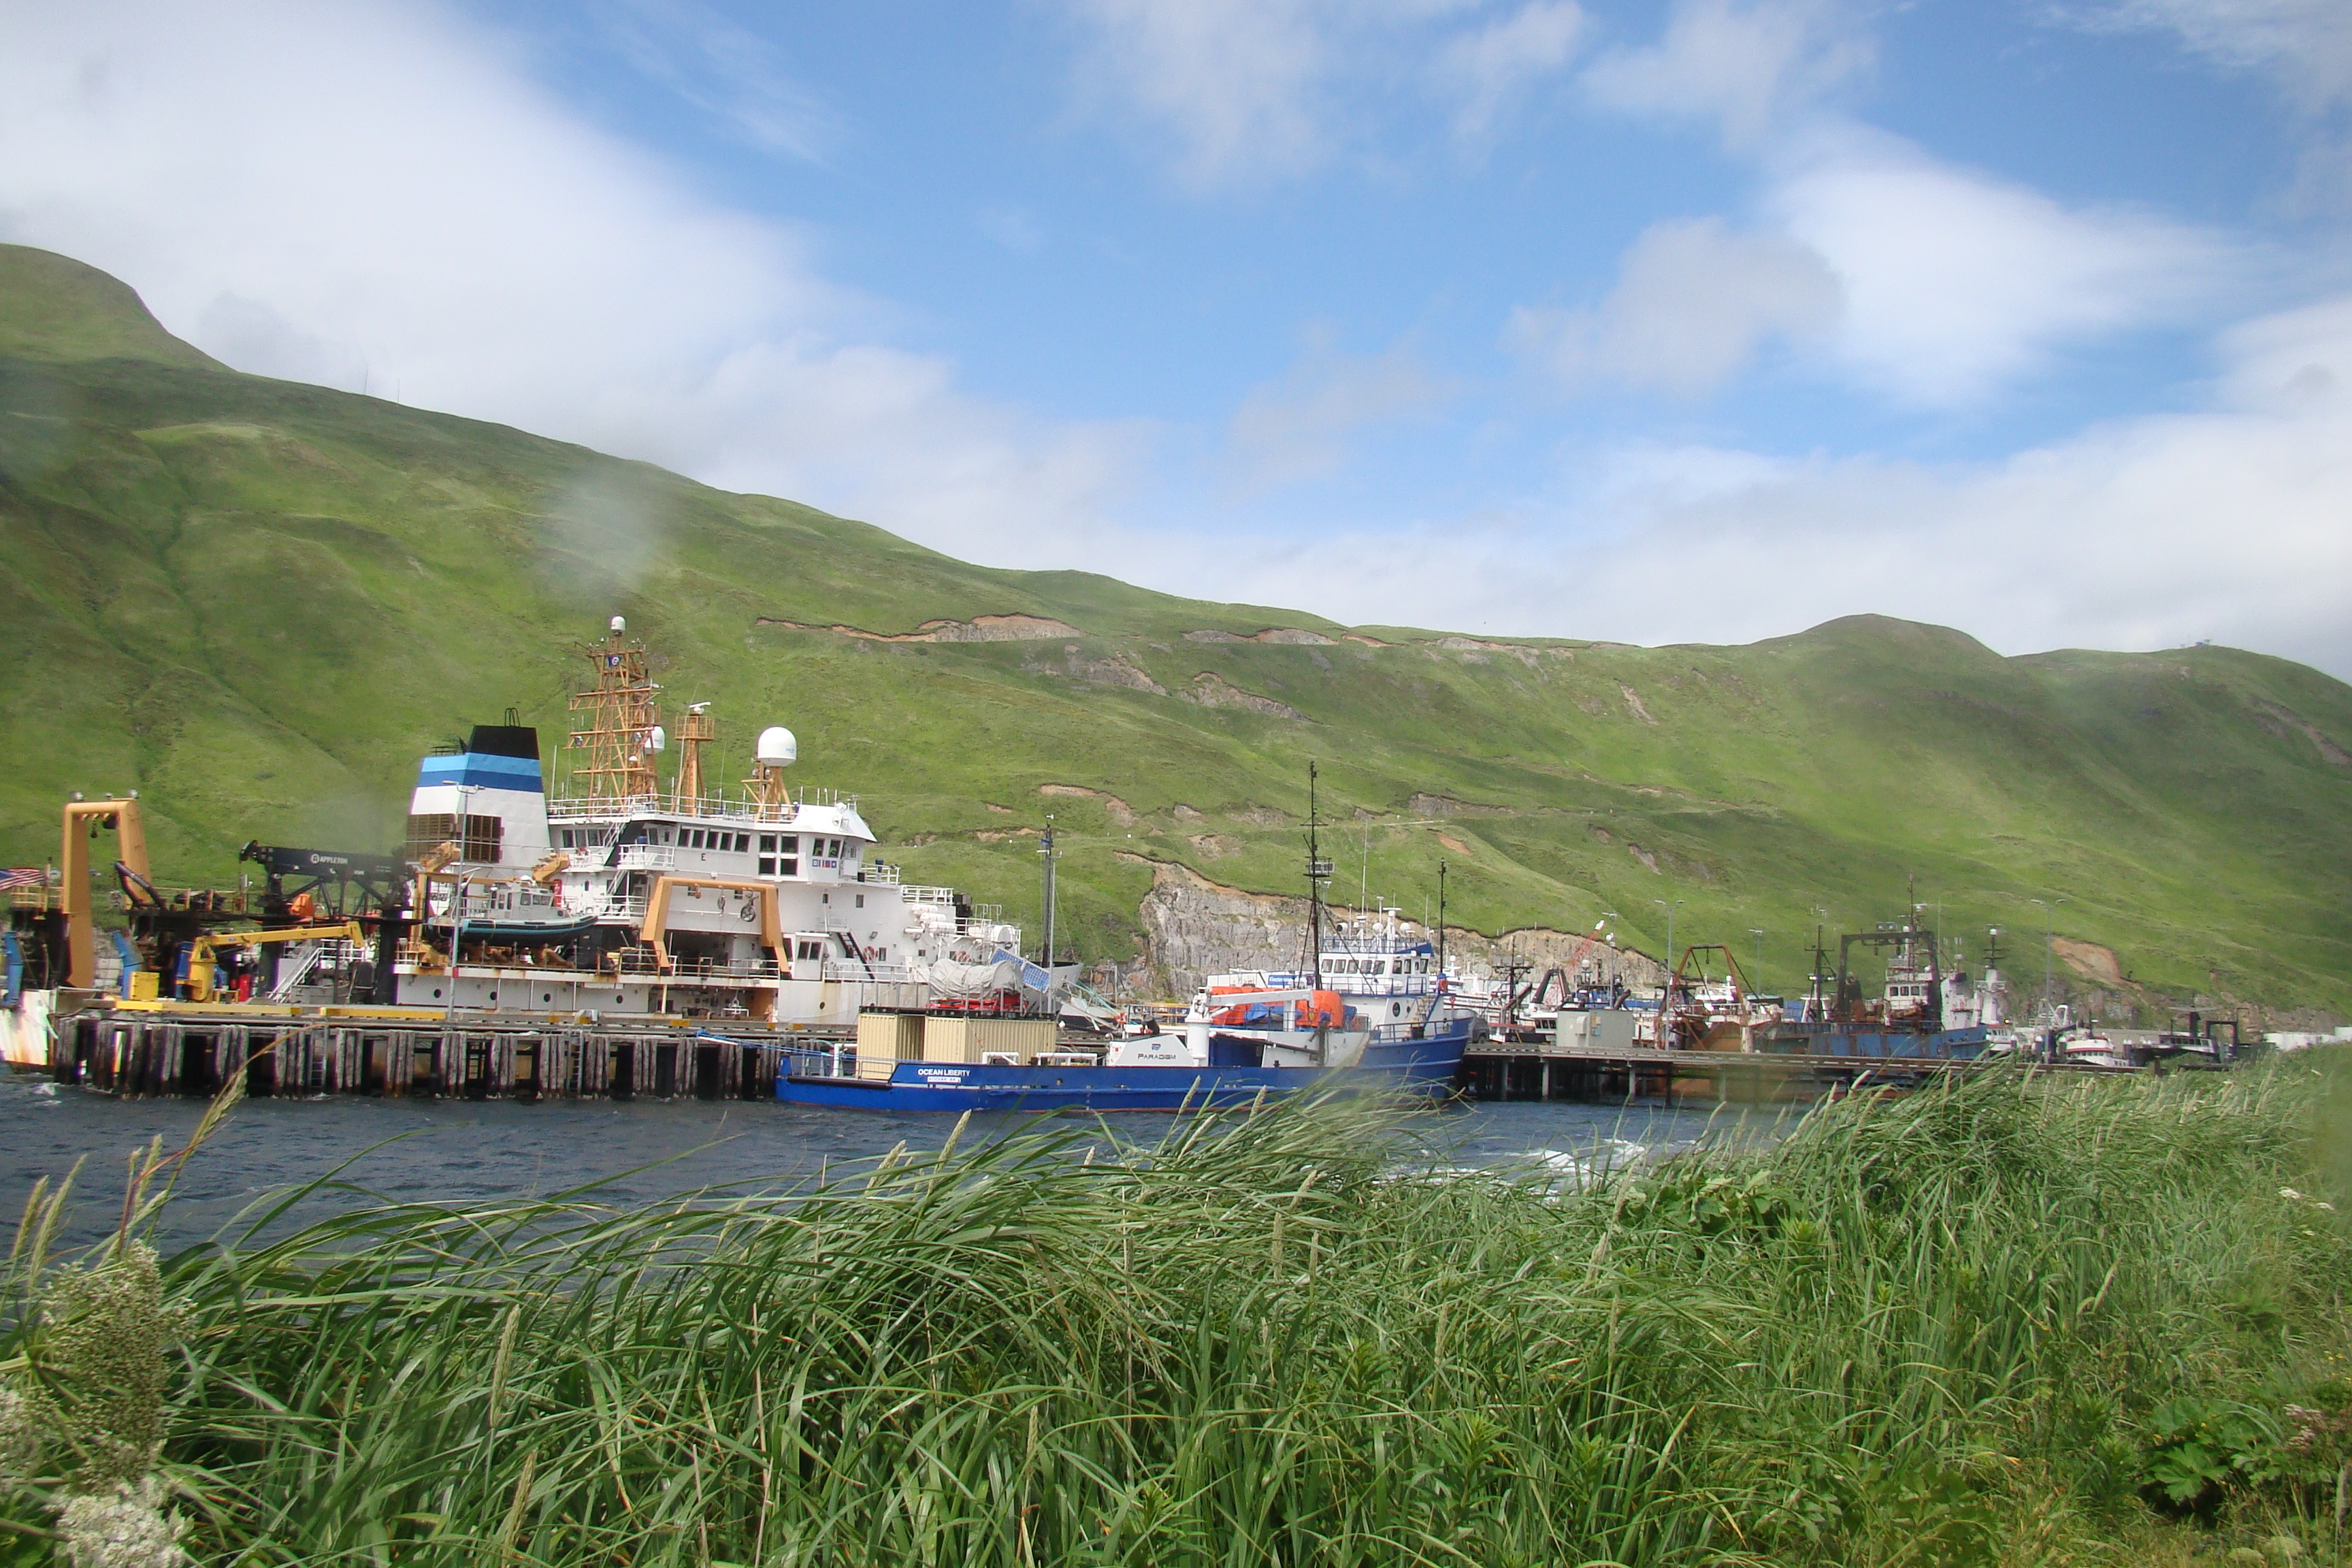 NOAA Ship Oscar Dyson at Port in Dutch Harbor, AK